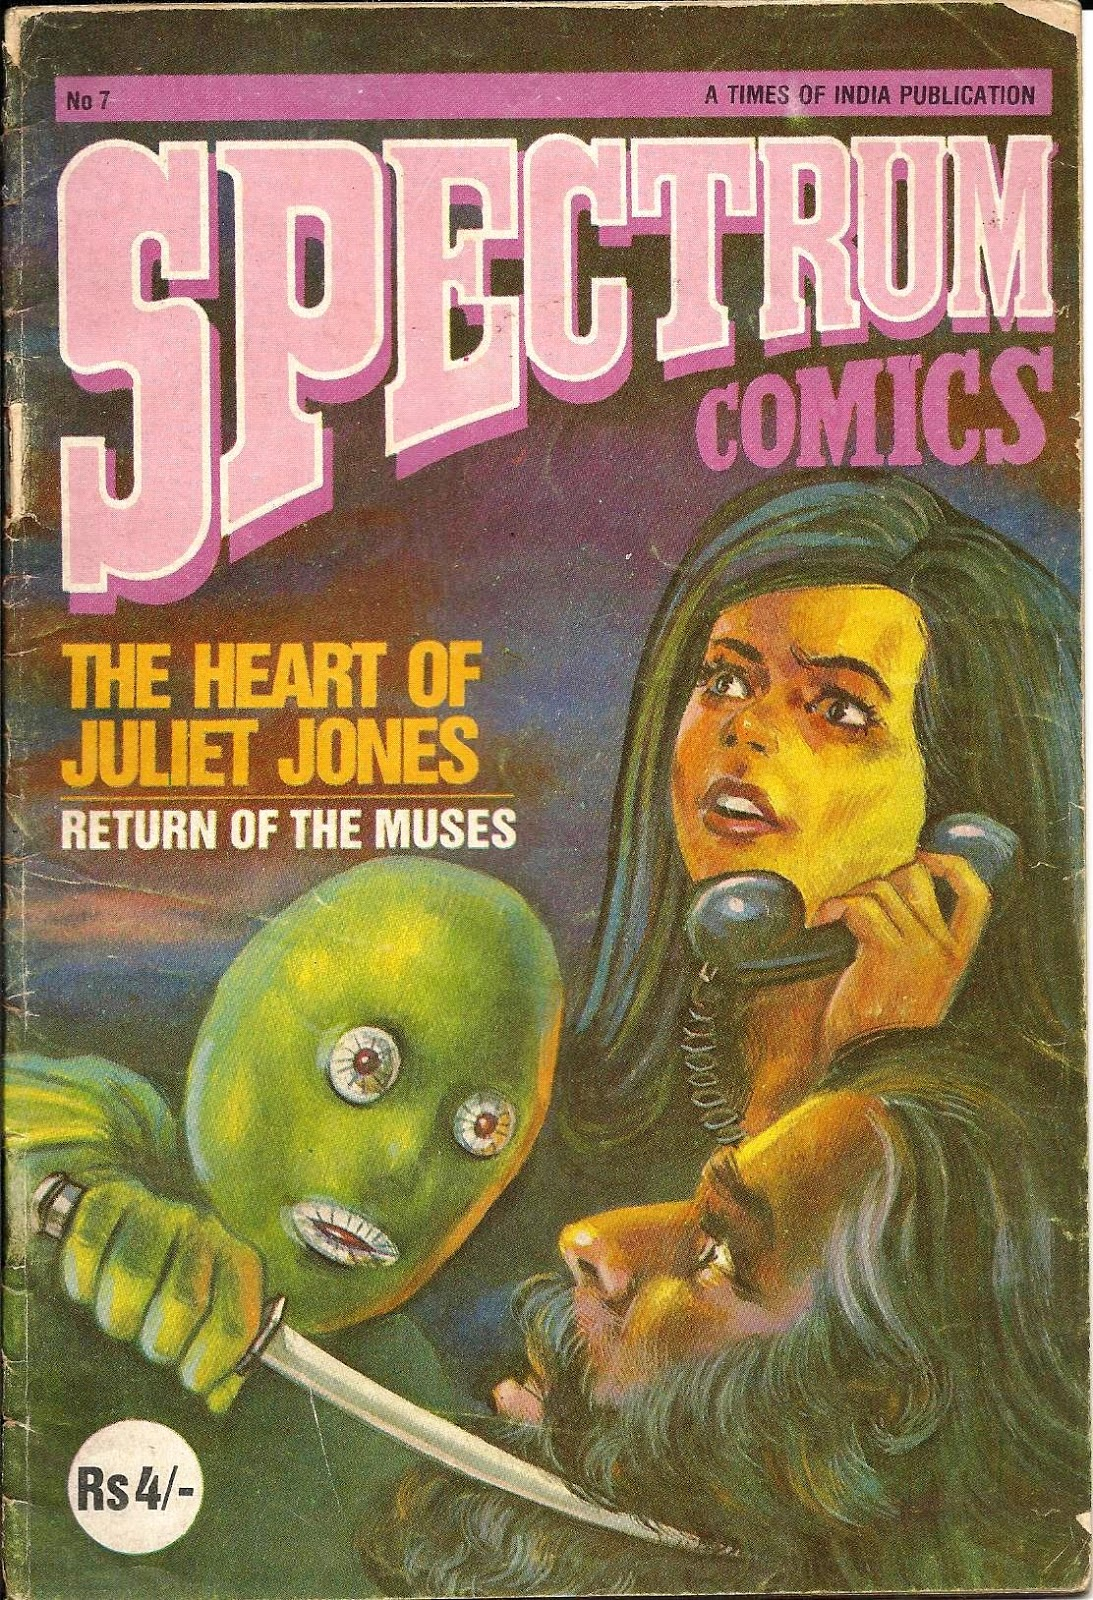 7 Muses Comics spectrum comics-the heart of juliet jones-return of the